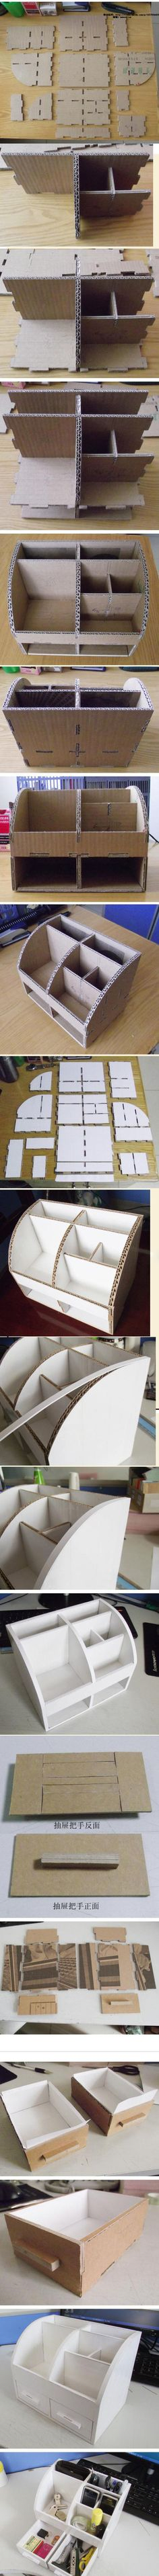 How To Make Carton Office Stationery Box